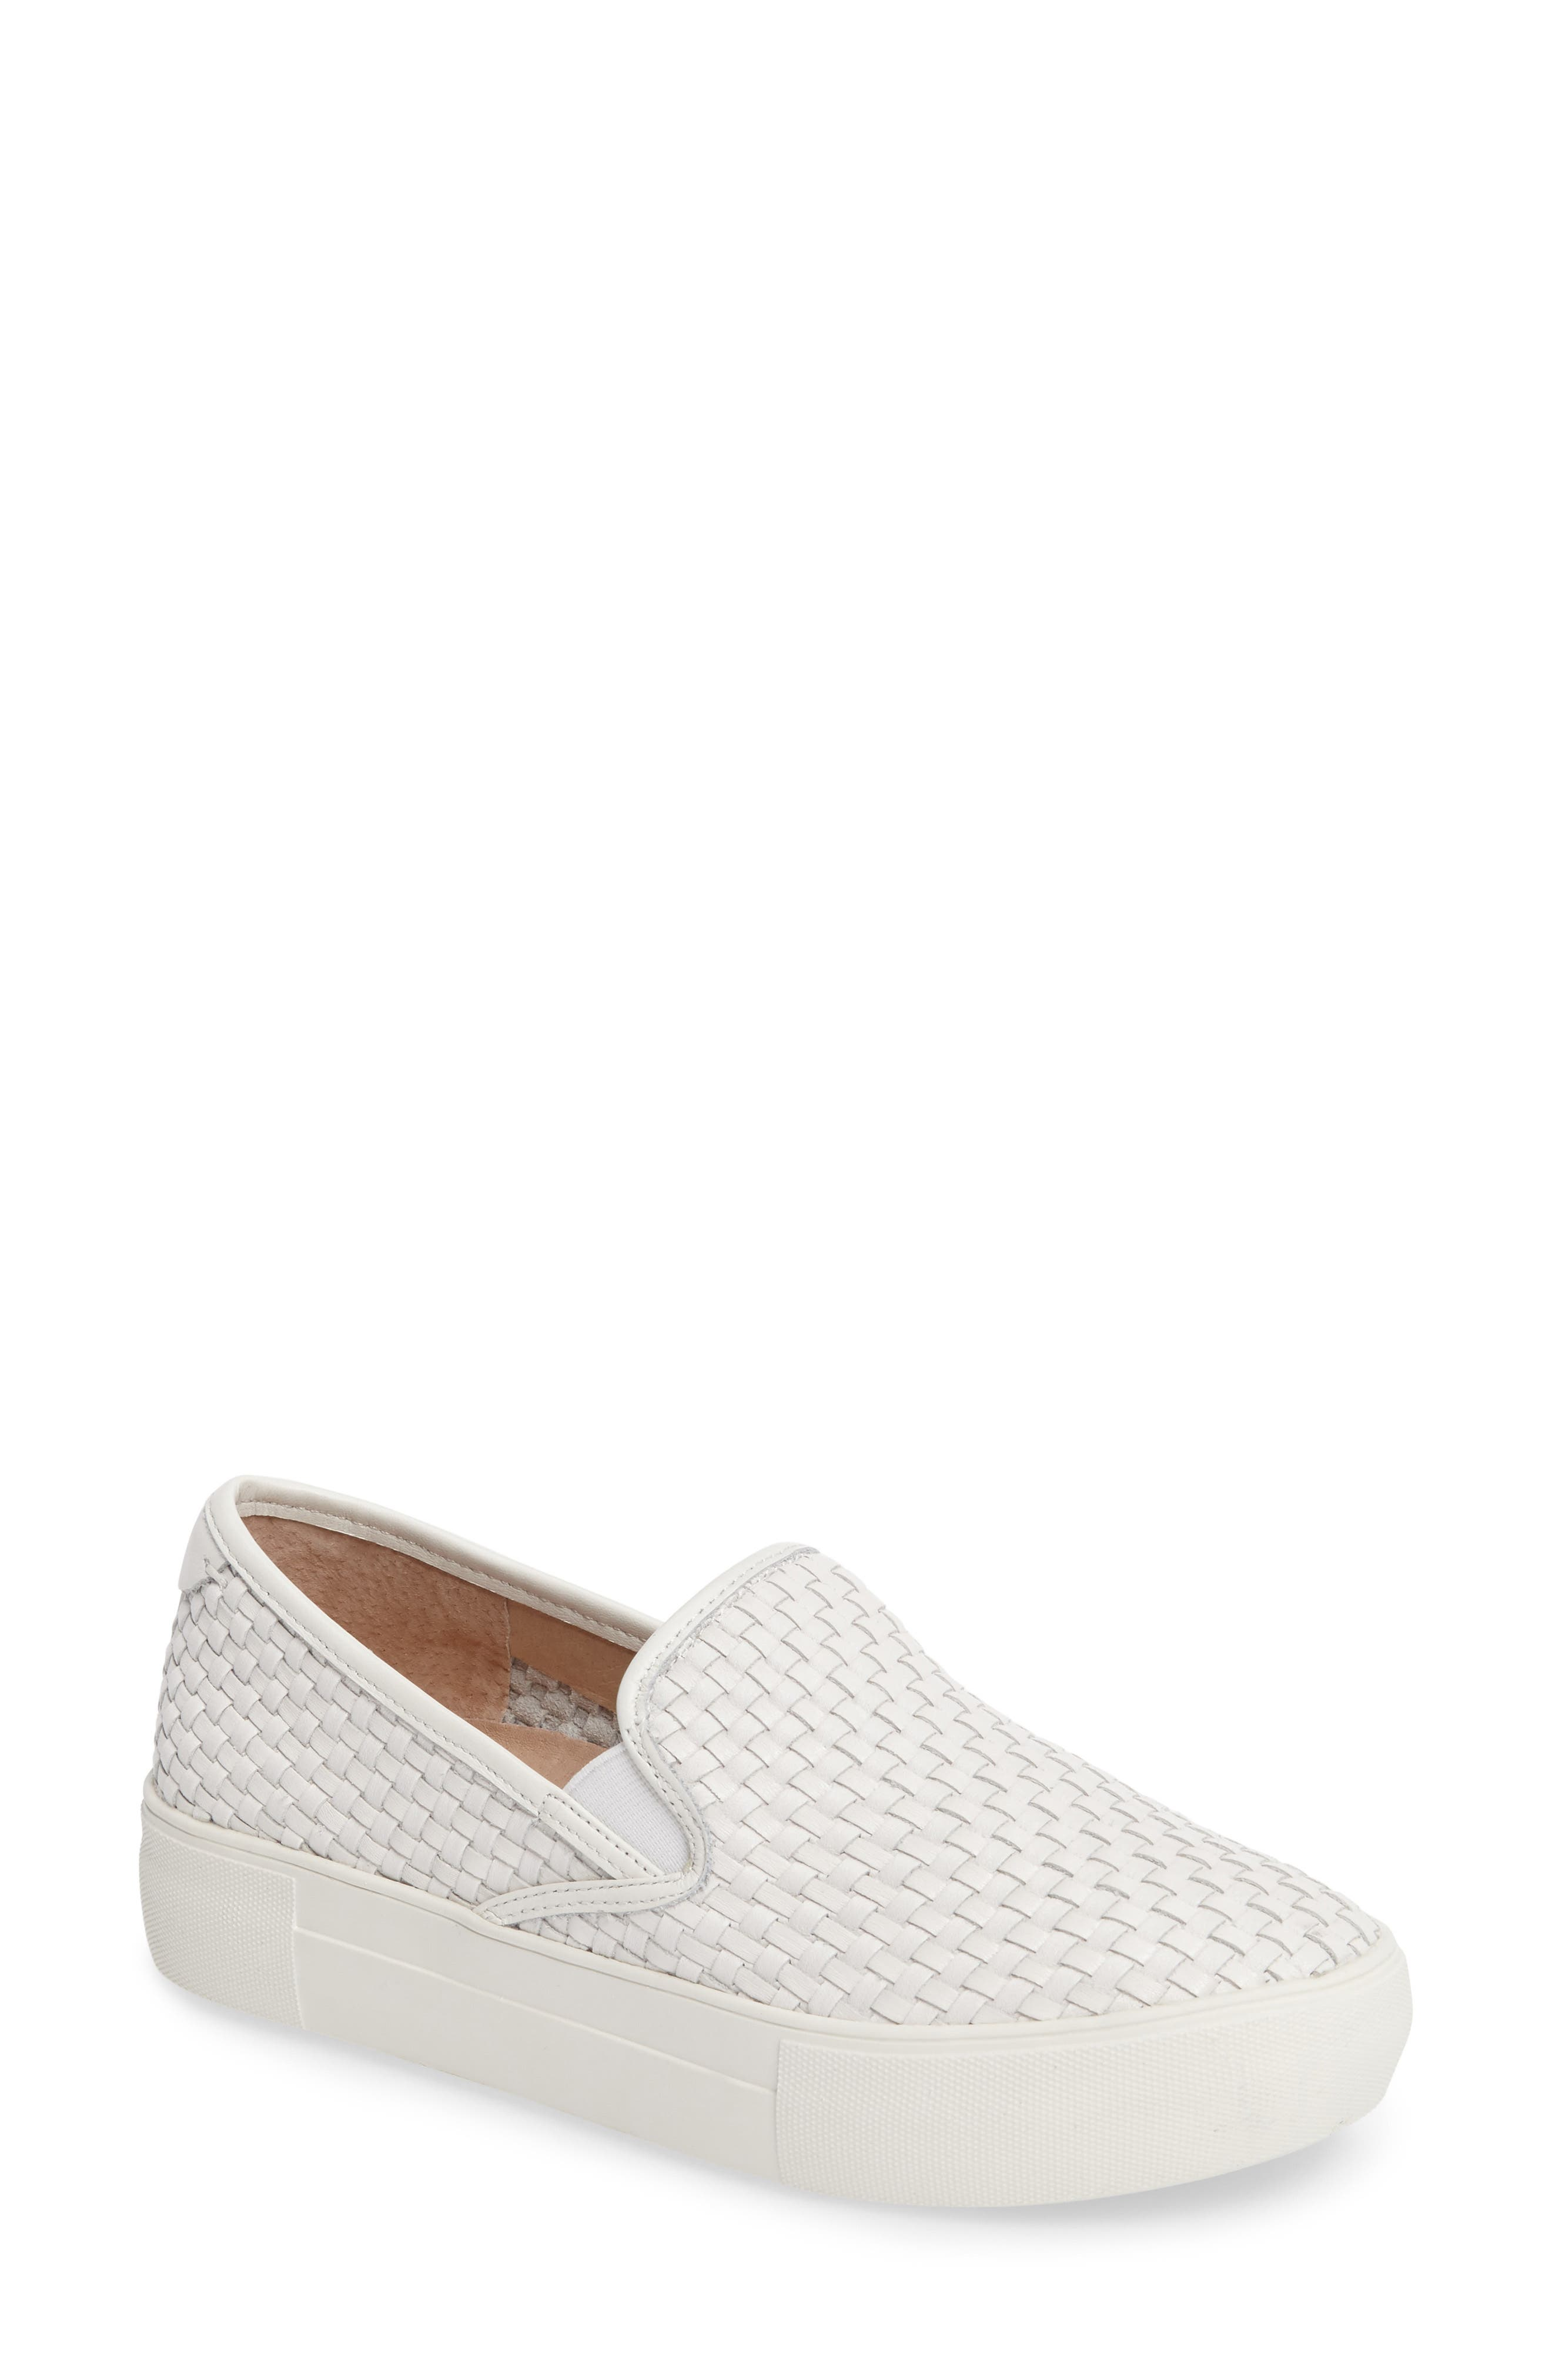 JSlides Alyssa Platform Slip-On Sneaker (Women)